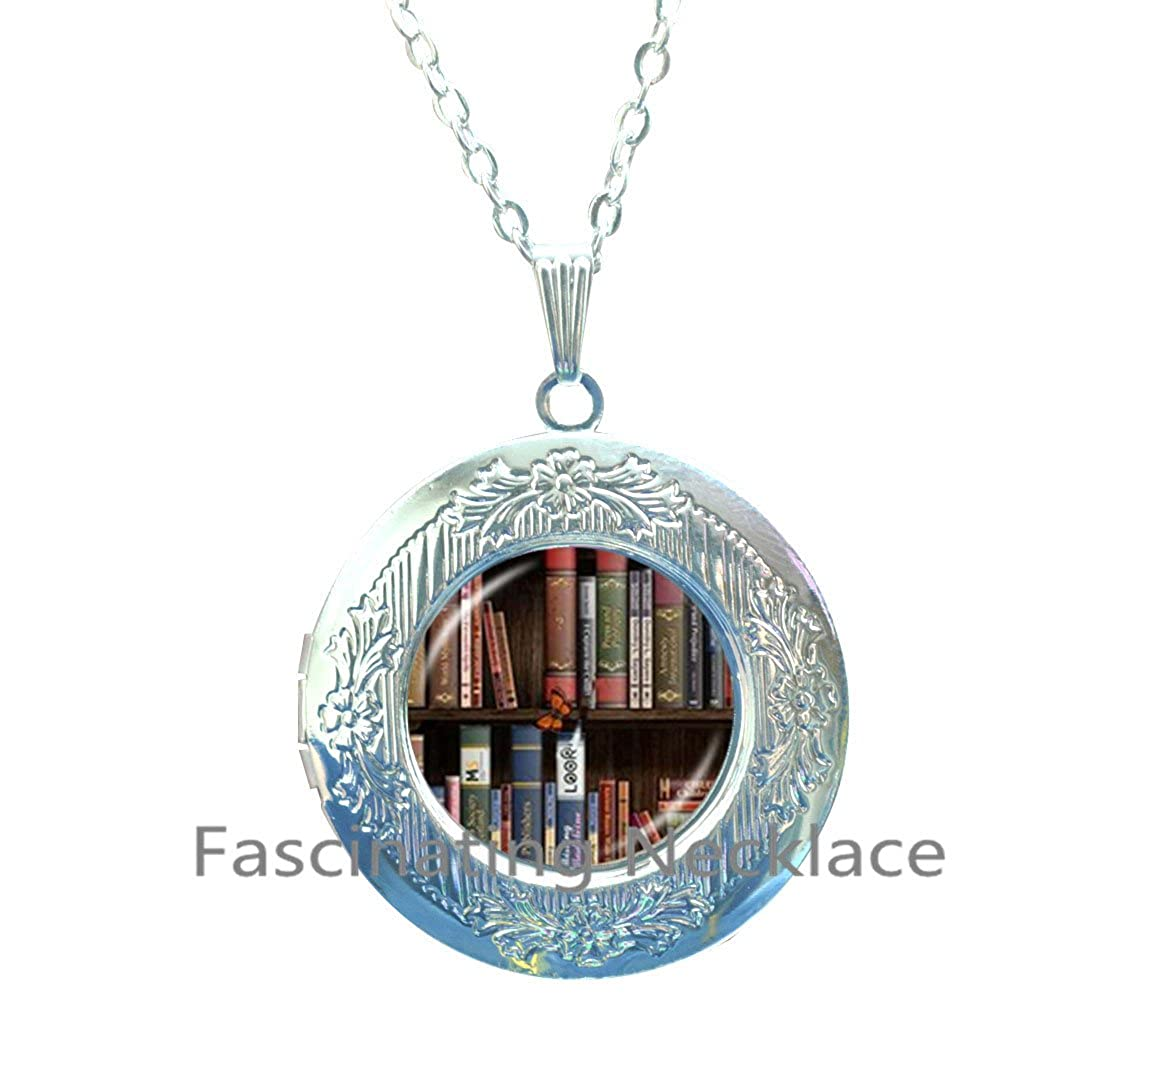 Library Book Locket Necklace Gifts for Librarians Writers Bibliophile Book Lover English Major Teacher Author Editors Bookworms Club,AQ176